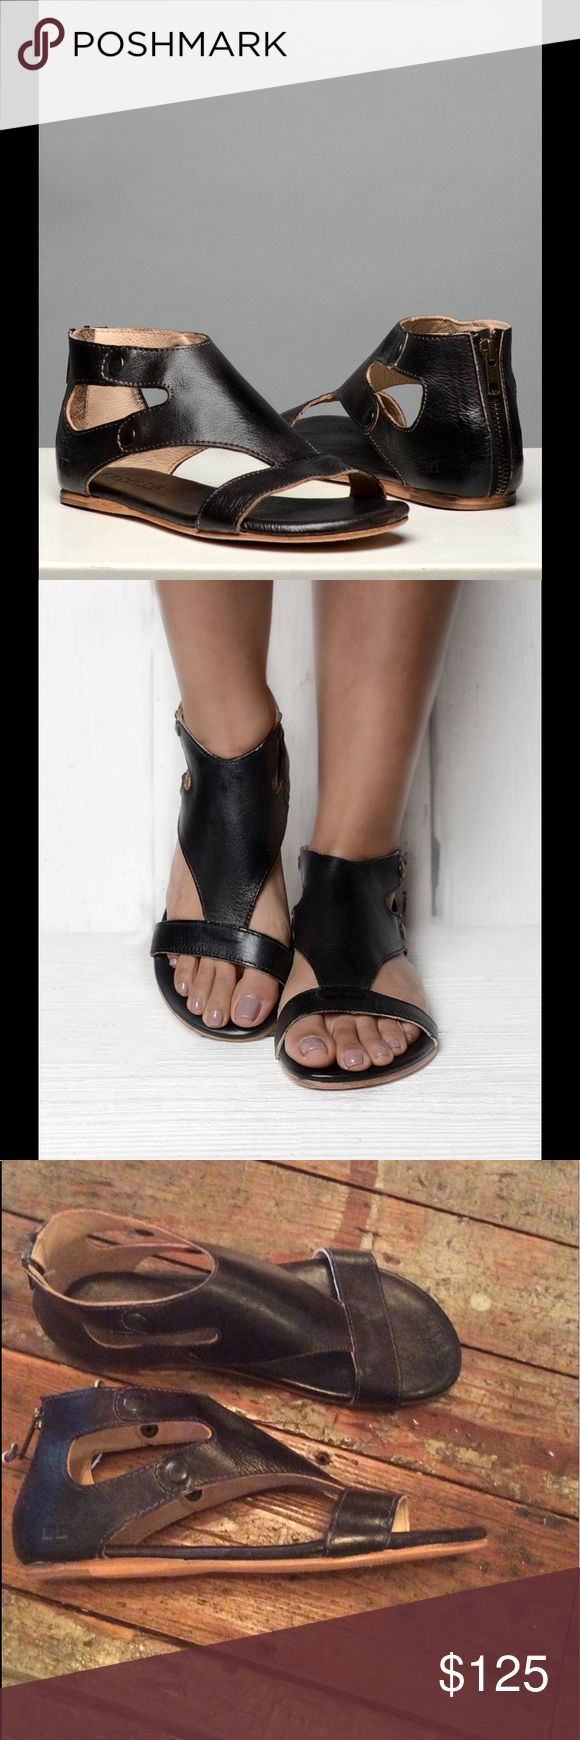 Bed Stü Soto Sandal in Black Rustic Genuine full grain leather sandal with stylish cutouts. Hand stitched. Bed Stu Shoes Sandals